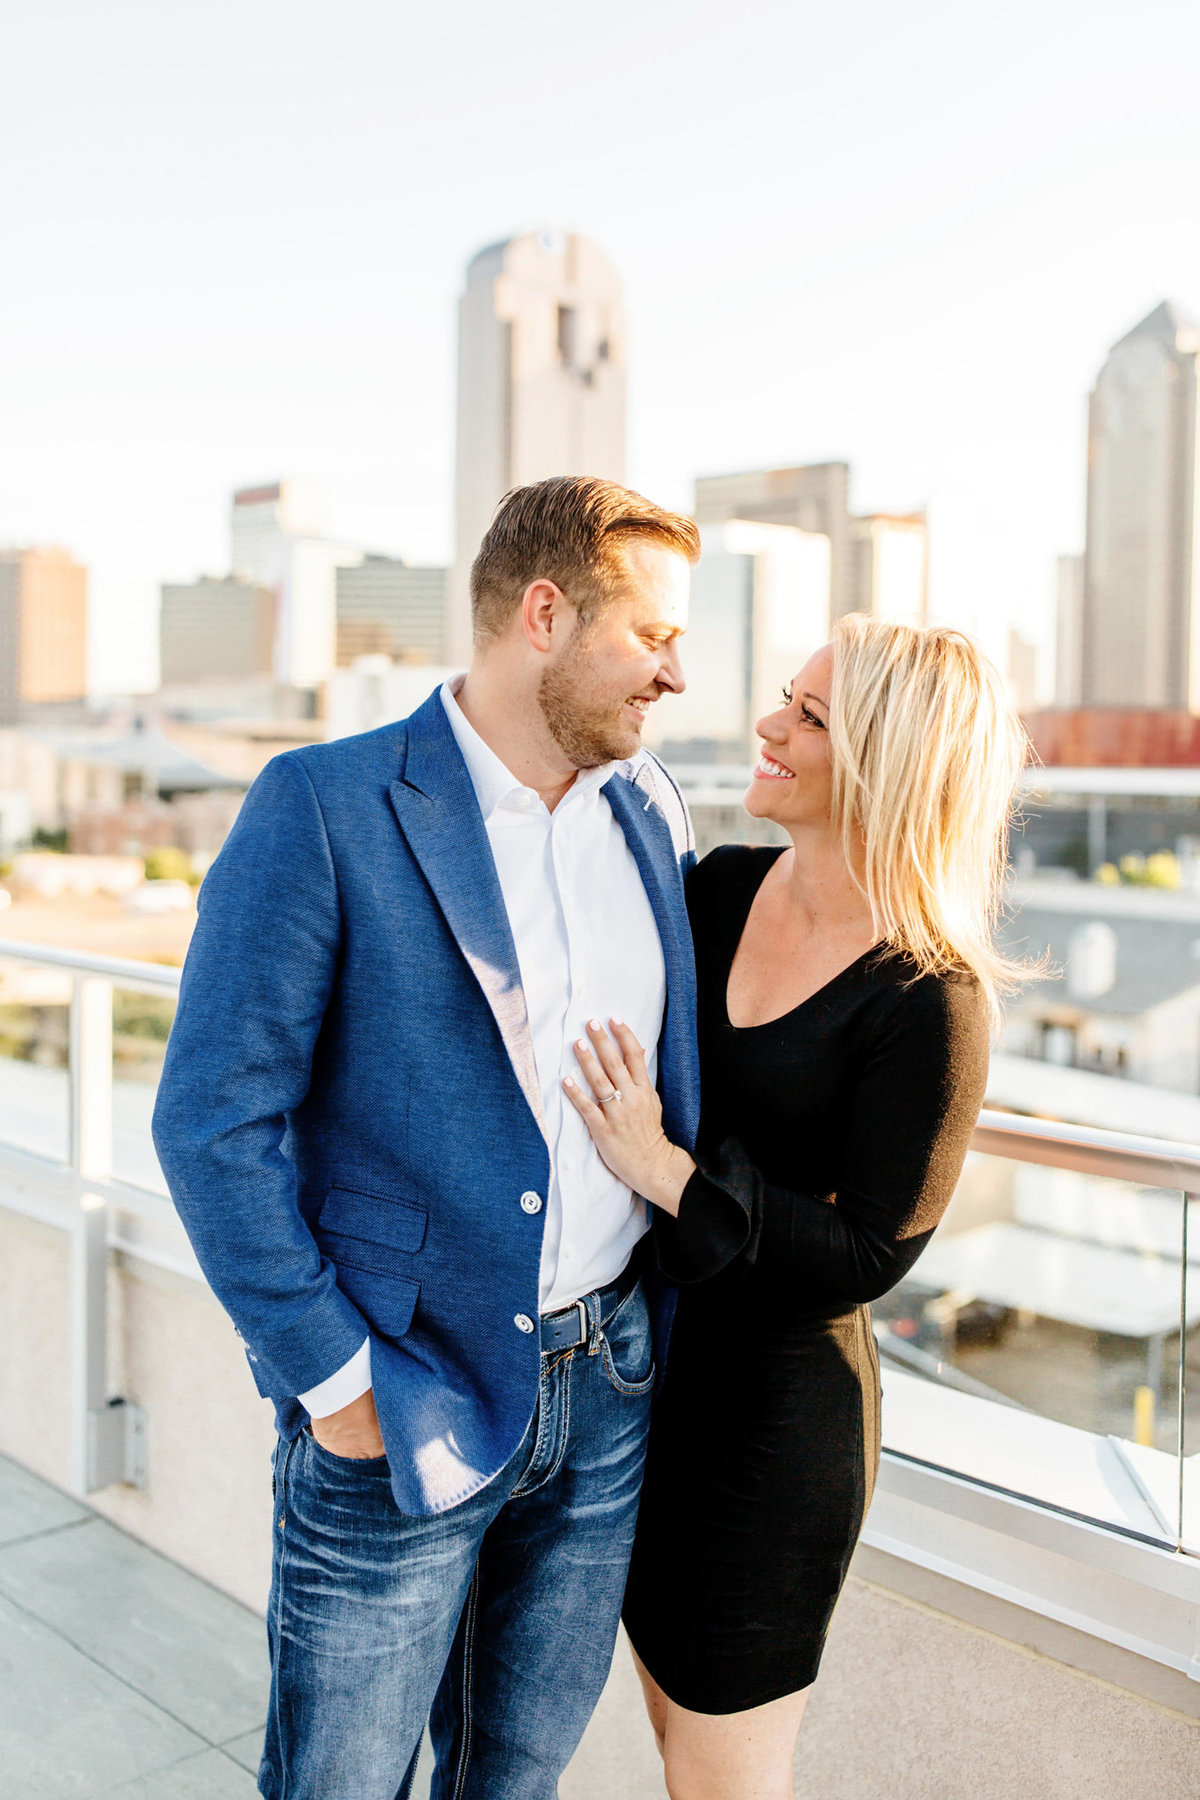 Eric & Megan - Downtown Dallas Rooftop Proposal & Engagement Session-63